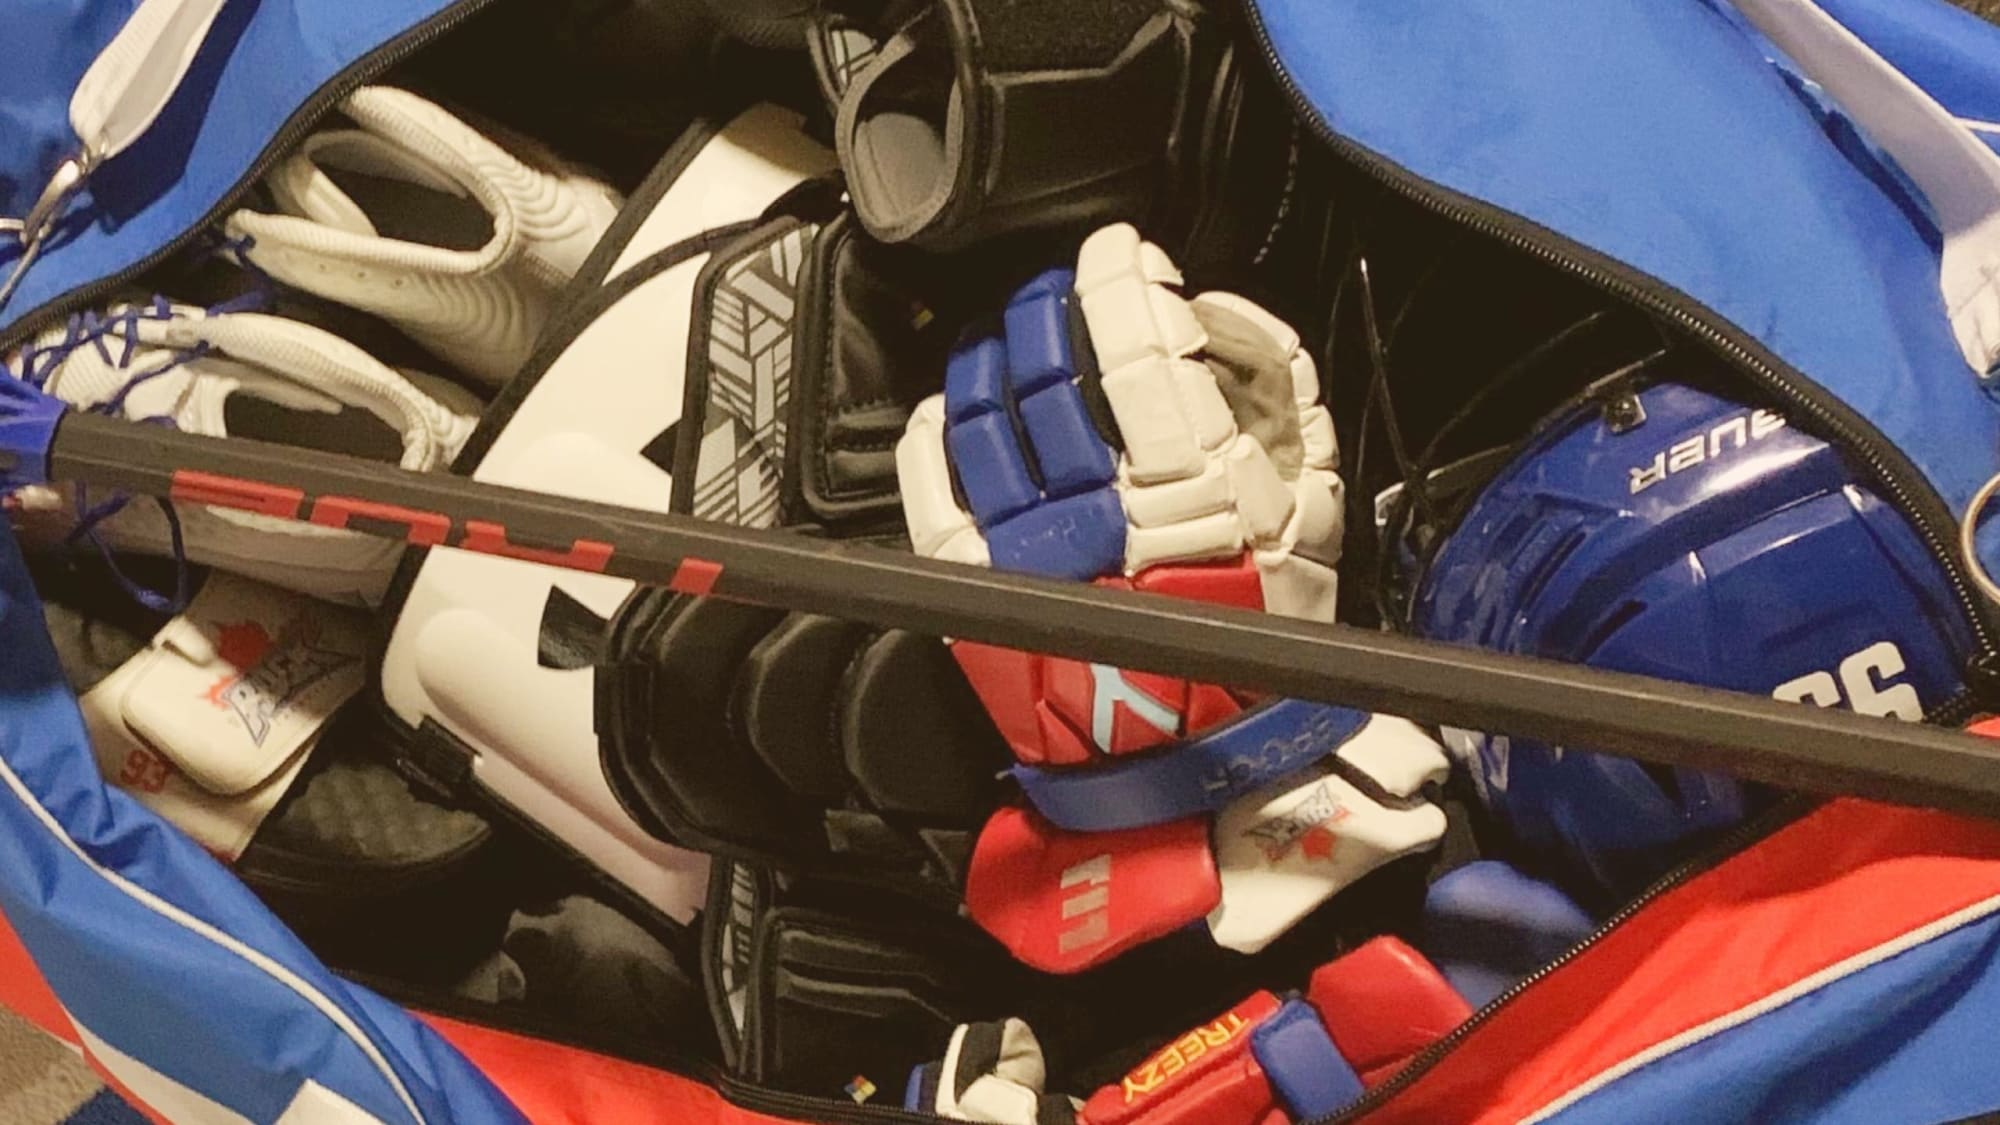 Your gear can get pretty soaked after playing lacrosse. These are five accessible ways you can air out lacrosse equipment.